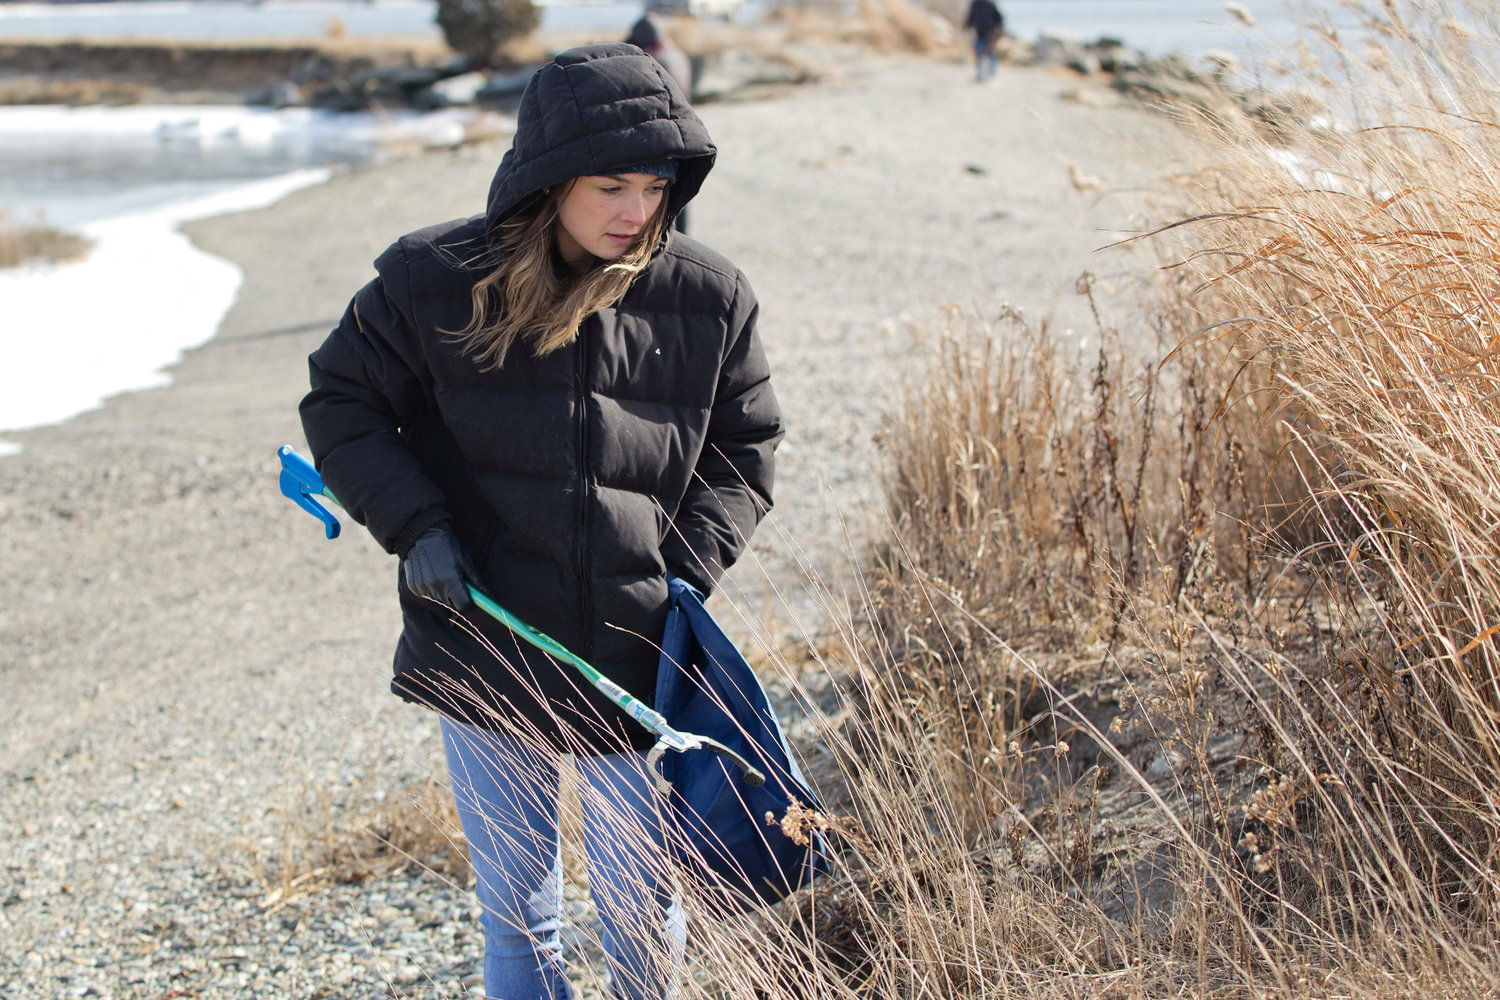 A volunteer combs the grass in search of trash at Gull Cove.